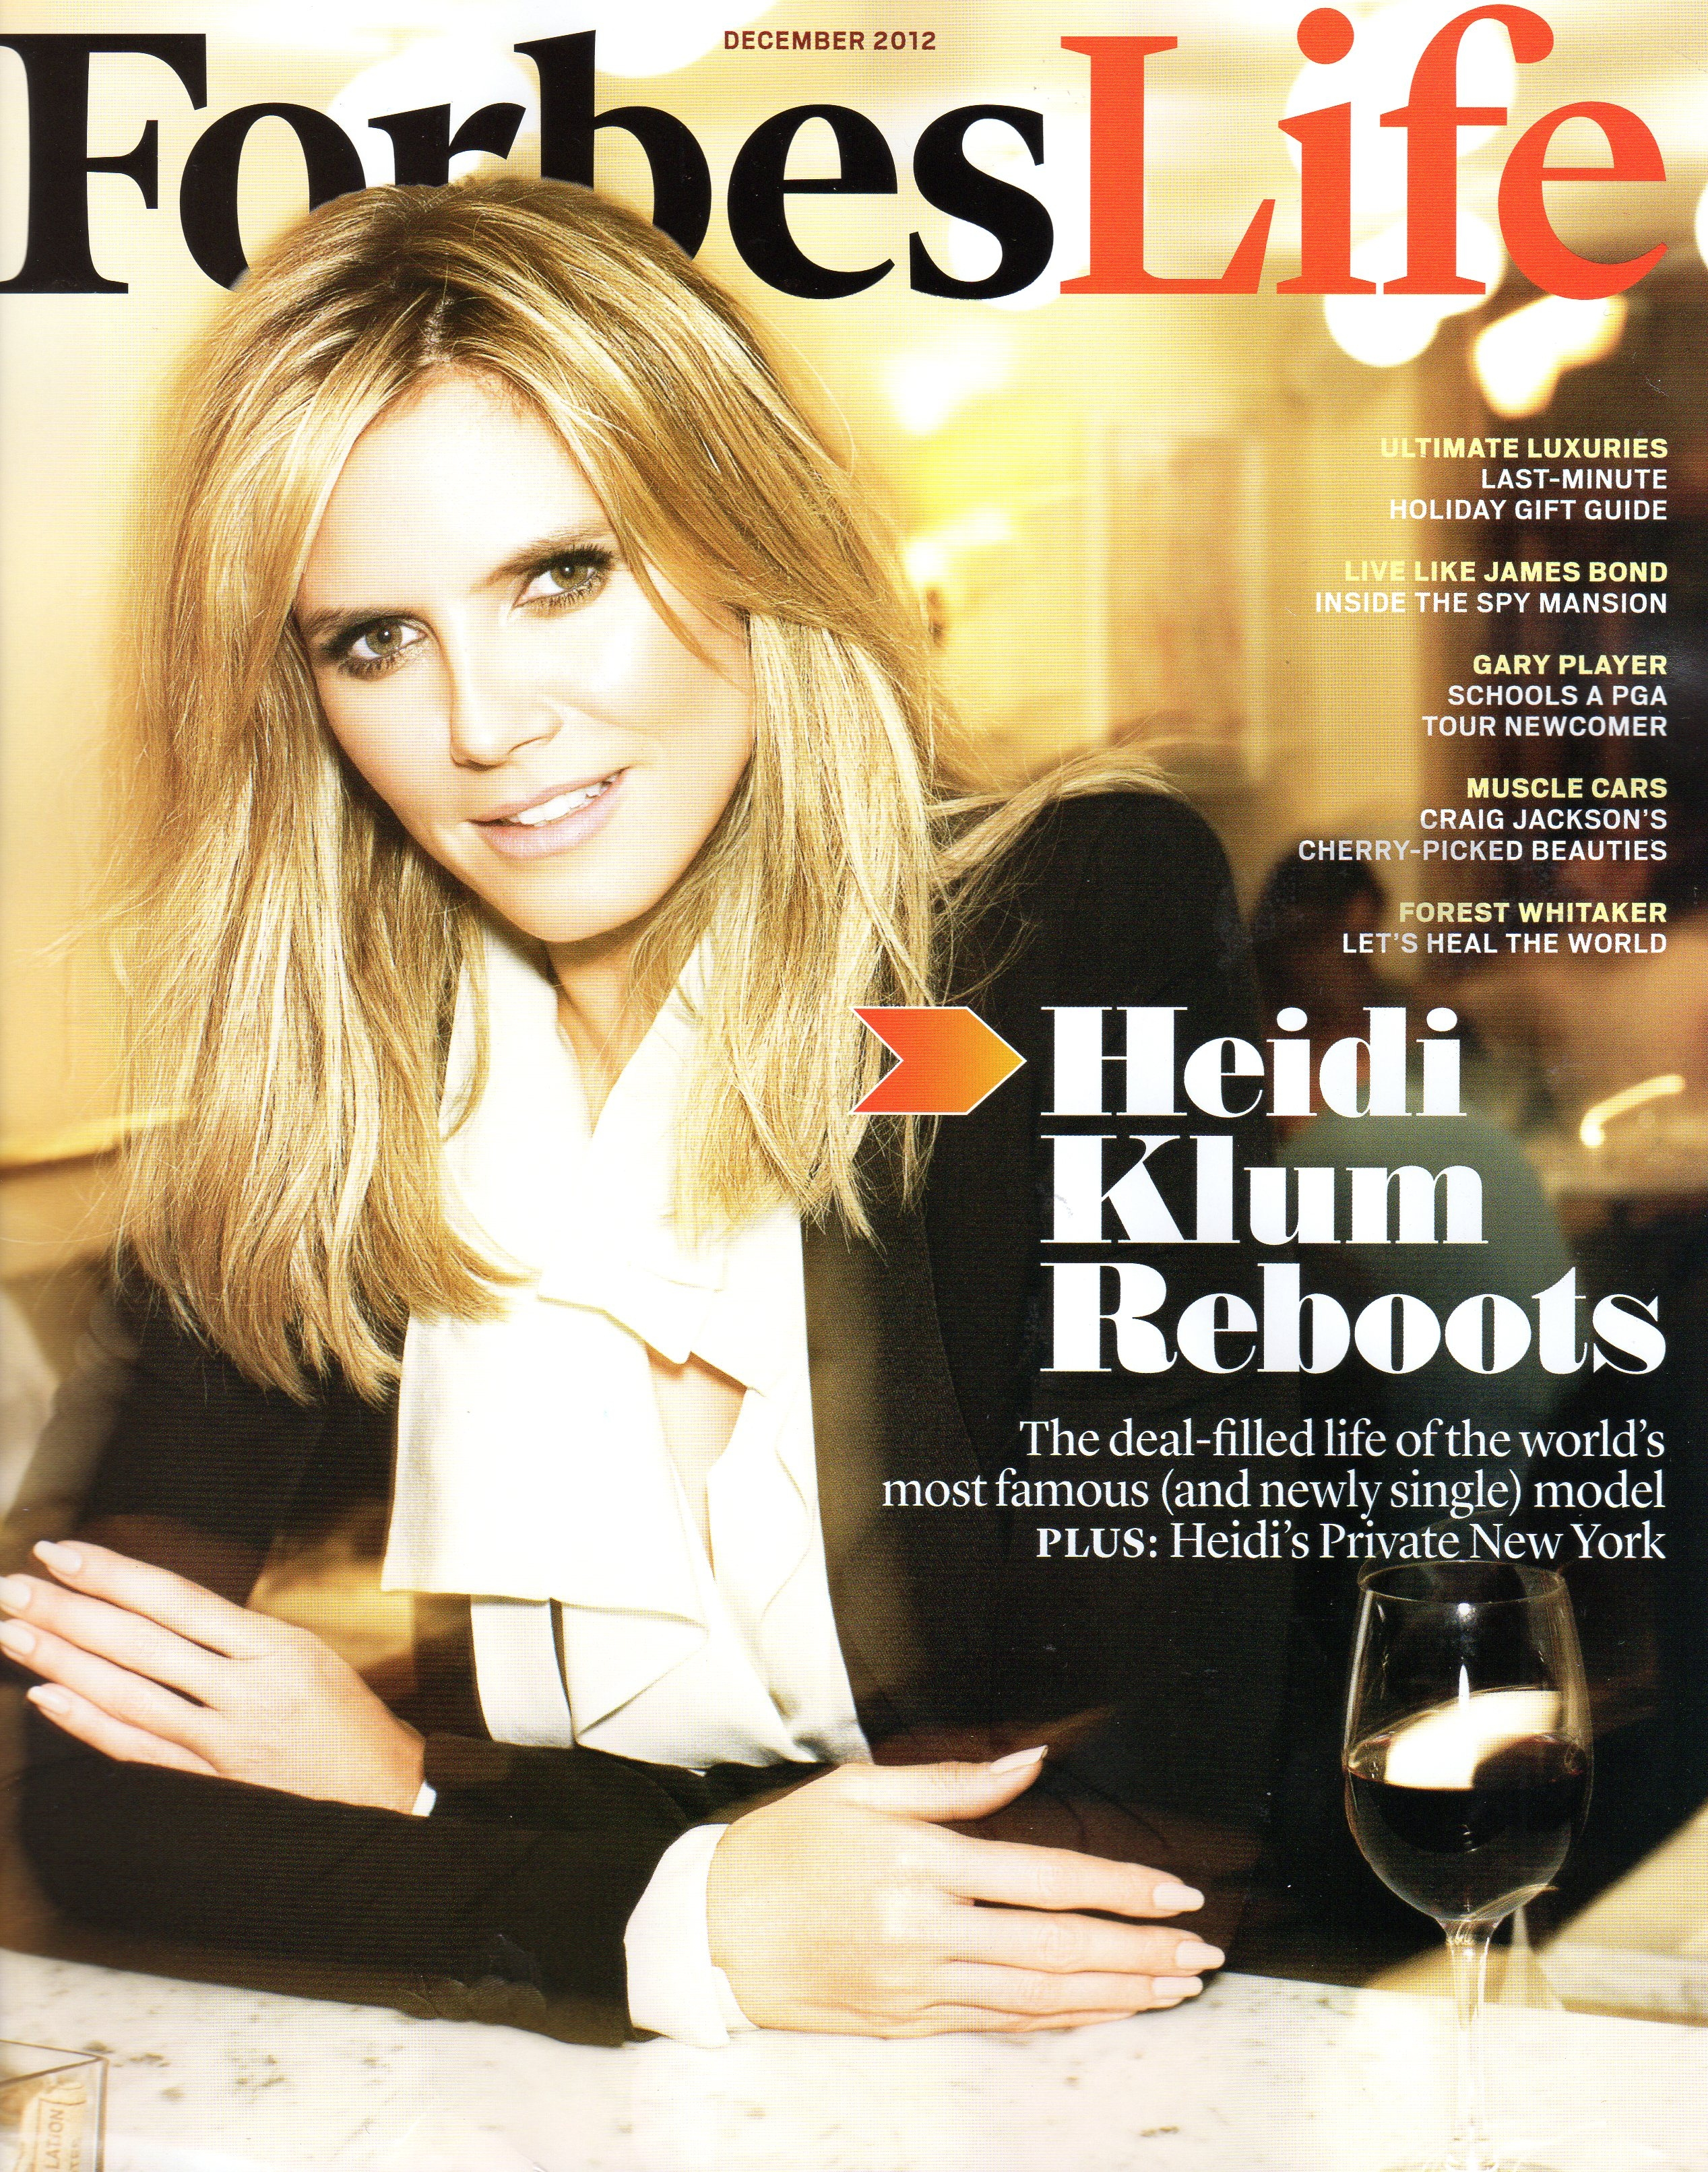 Heidi Klum on the Forbes Life cover